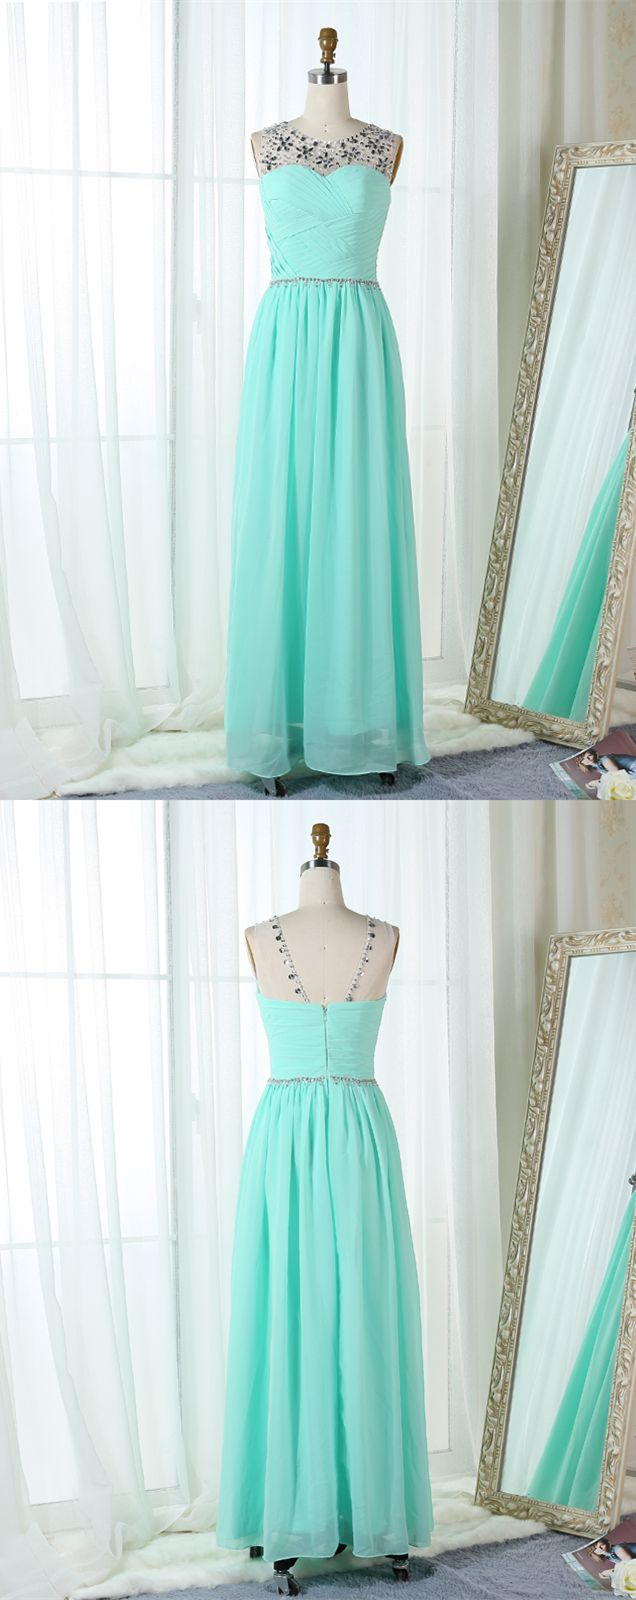 Aline bateau mint green chiffon prom bridesmaid dress with beading